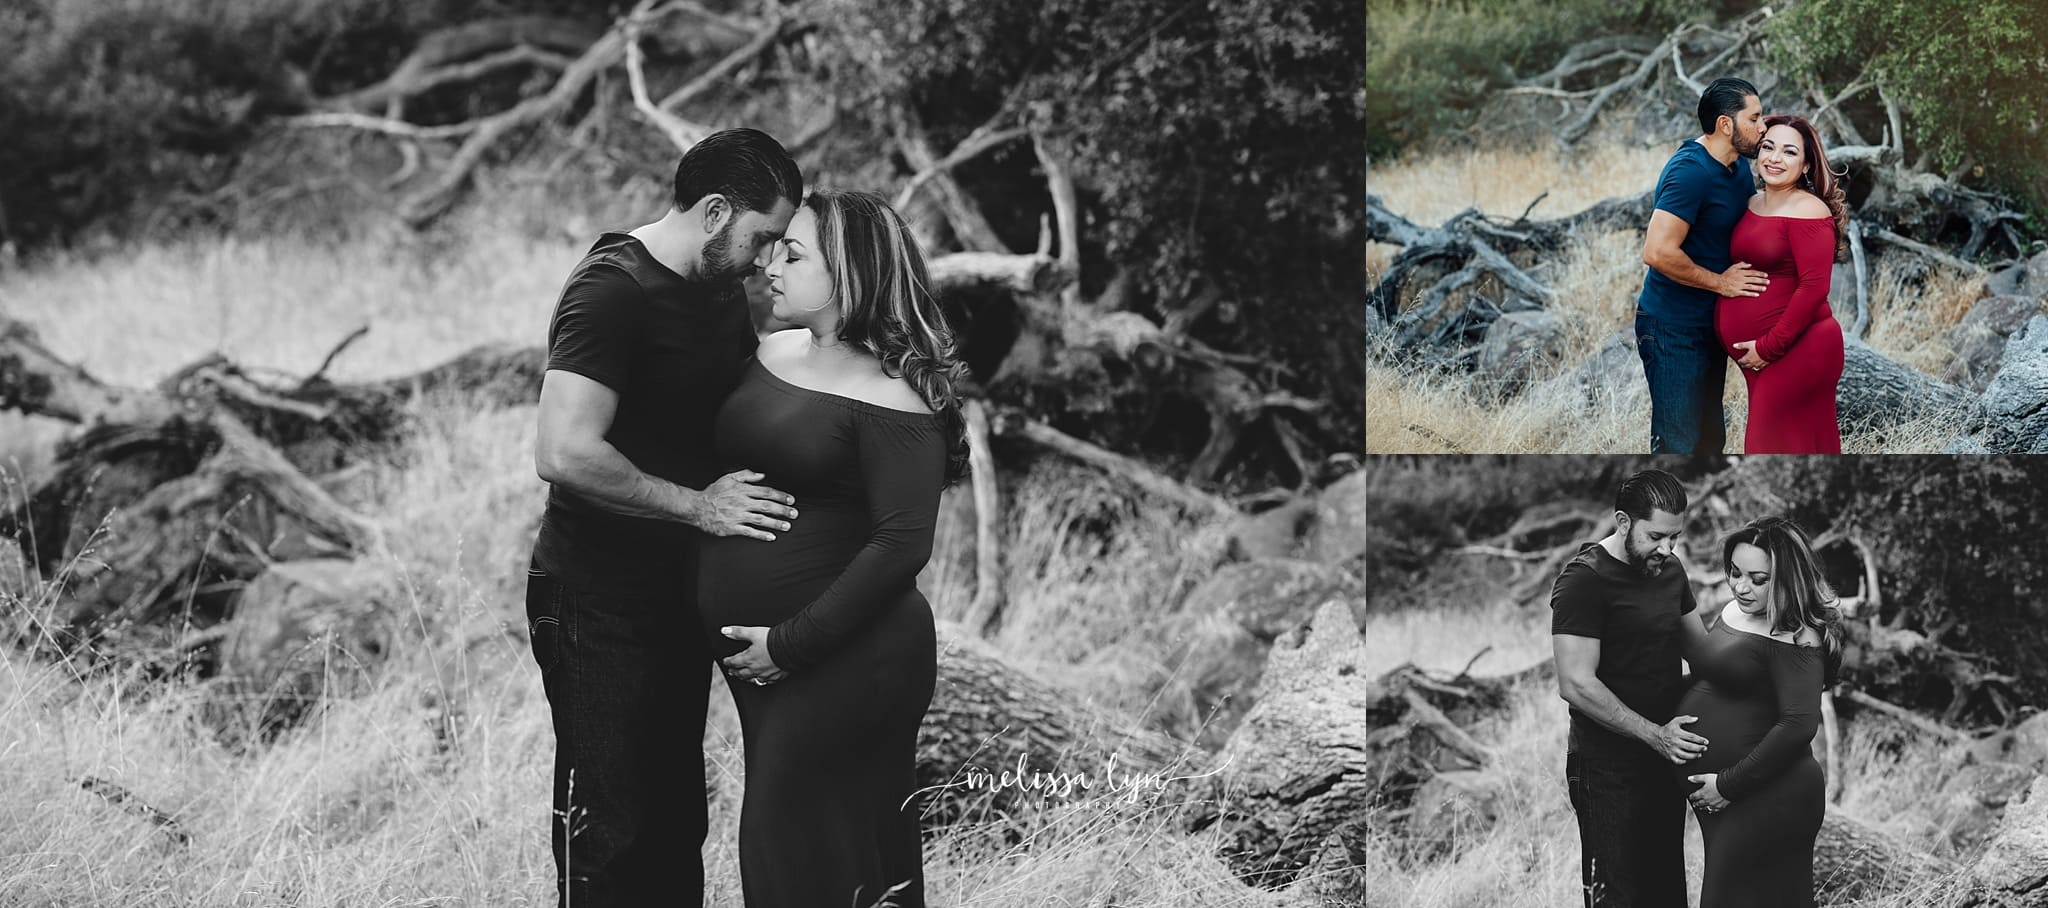 Melissa Lyn Photography - Temecula Maternity Photographer 39